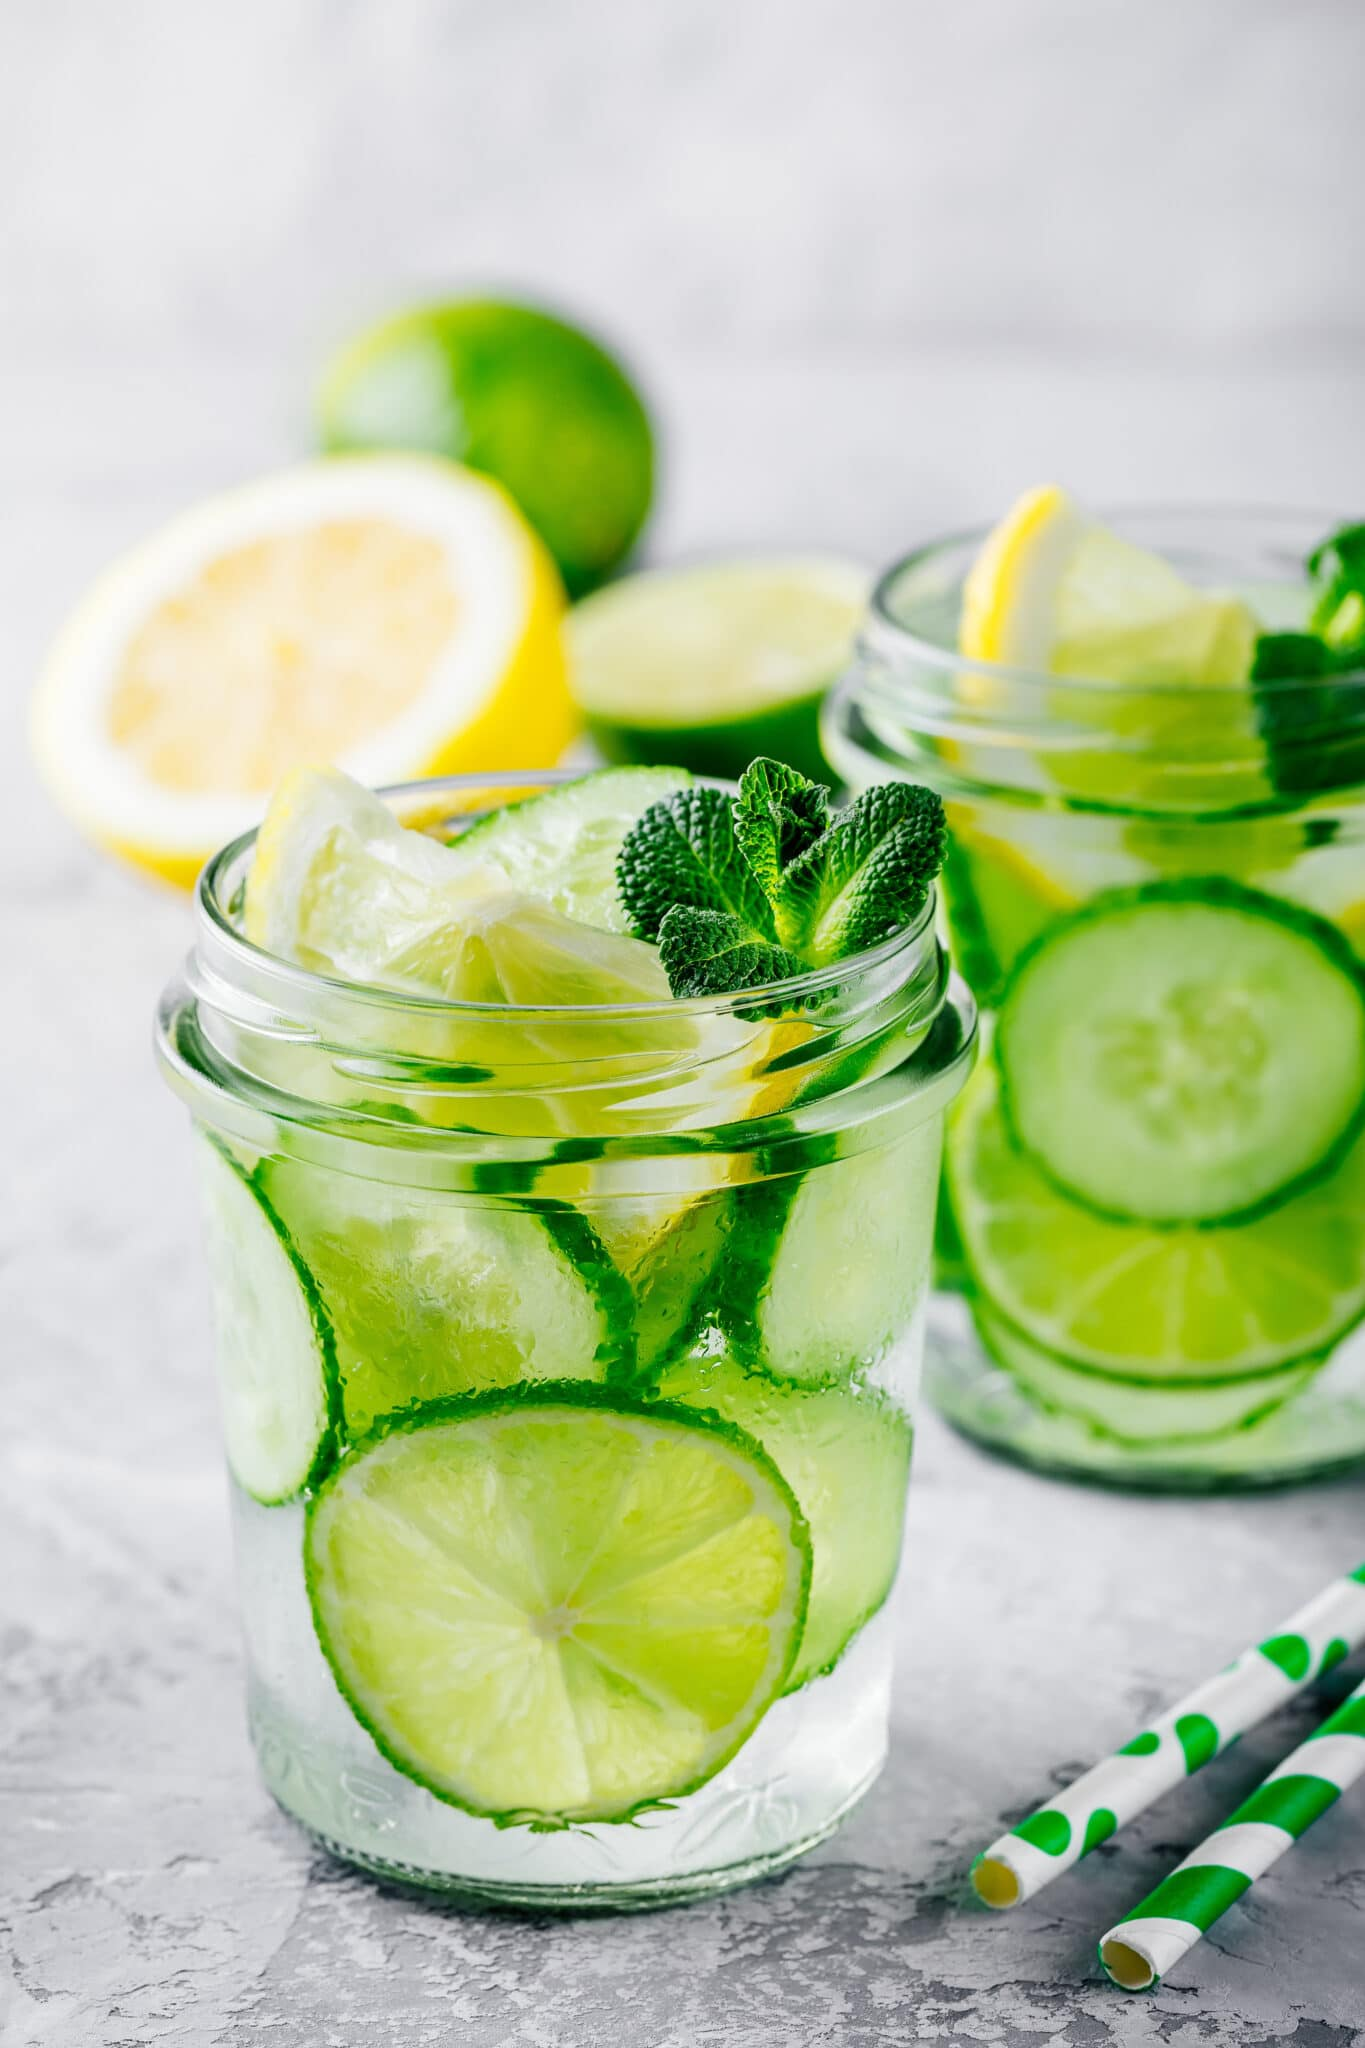 Cucumber and lime infused water.